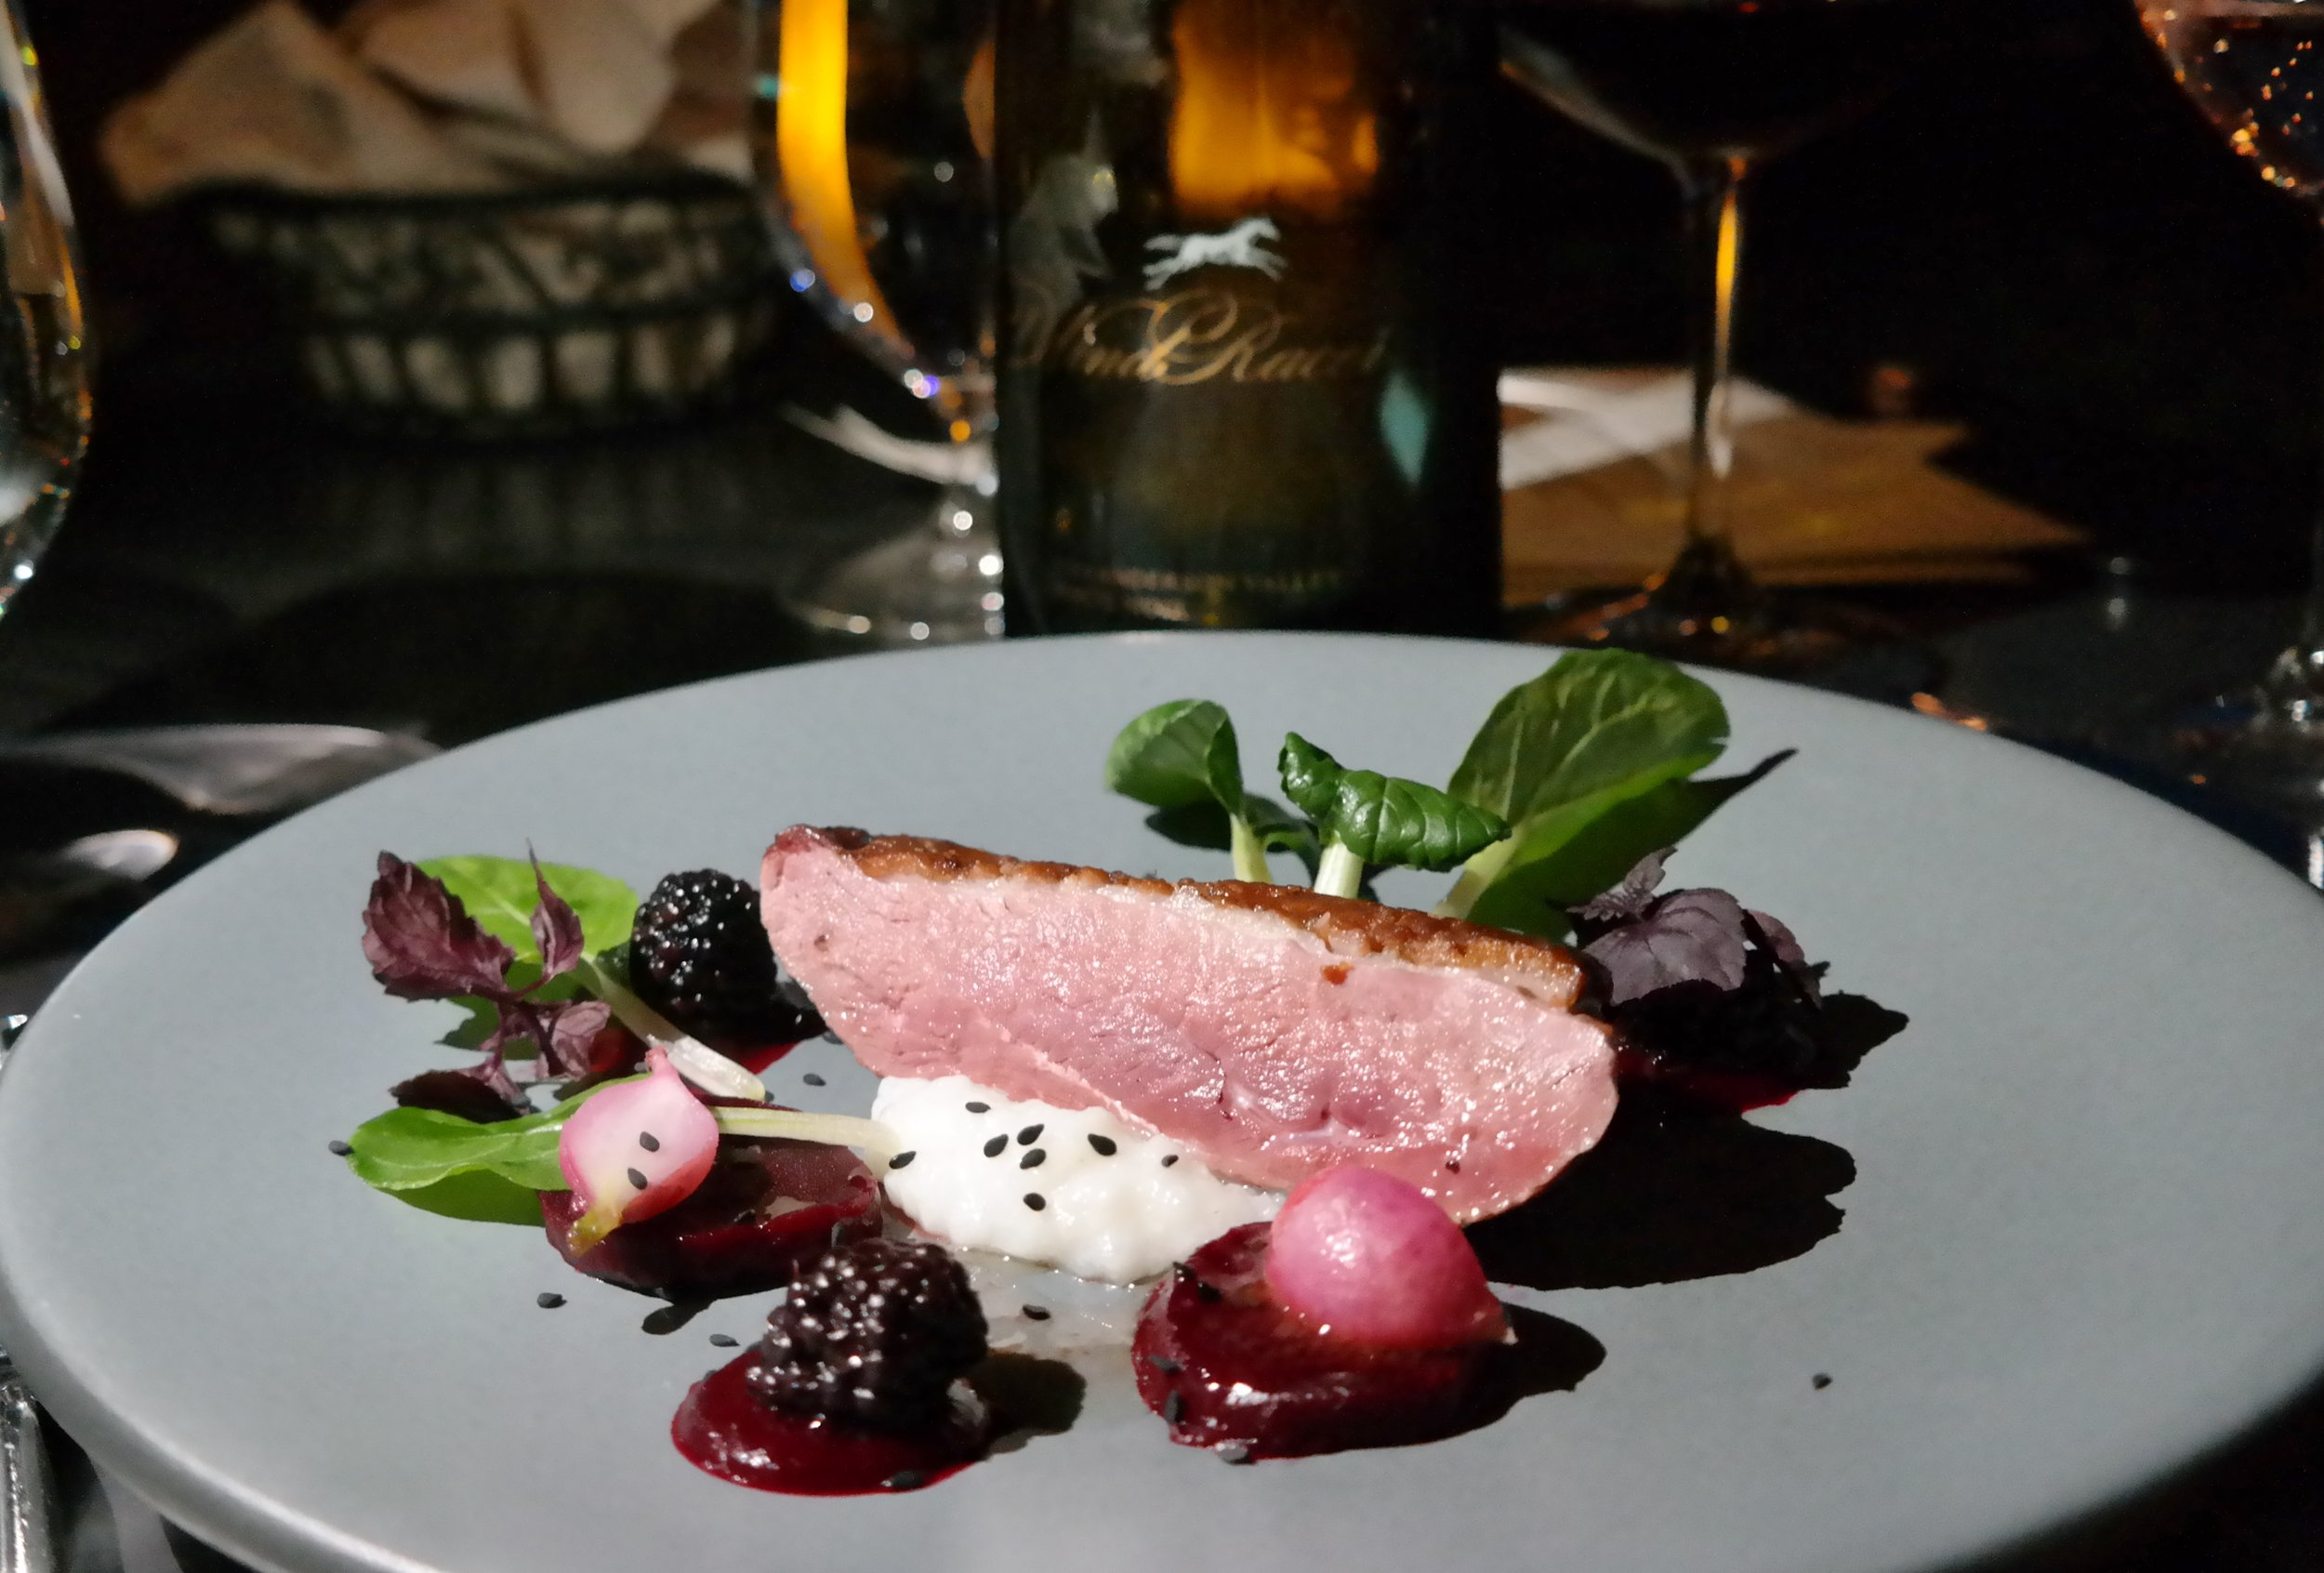 Chef Wangler: Smoked Duck with Corn Grits and Pickled Blackberries paired with WindRacer Anderson Valley Pinot Noir 2012